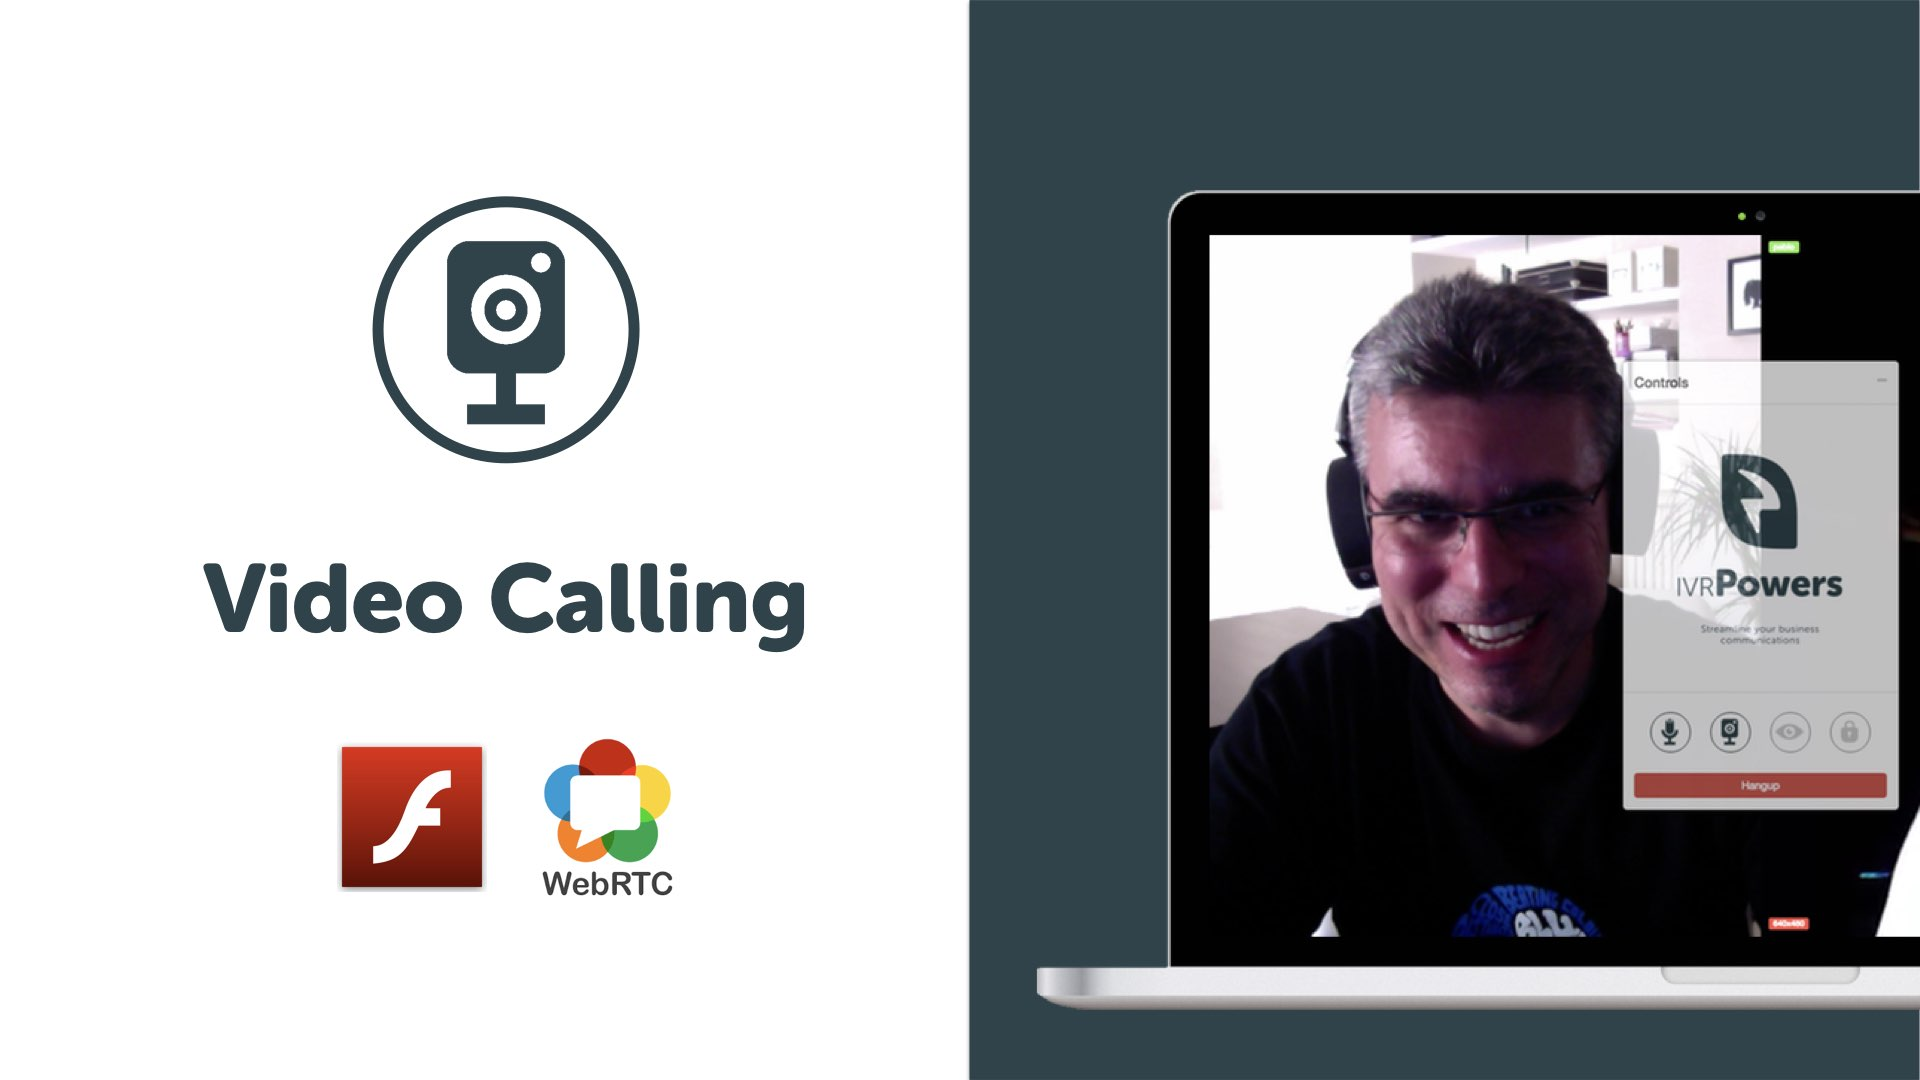 VideoRTC Video Calling